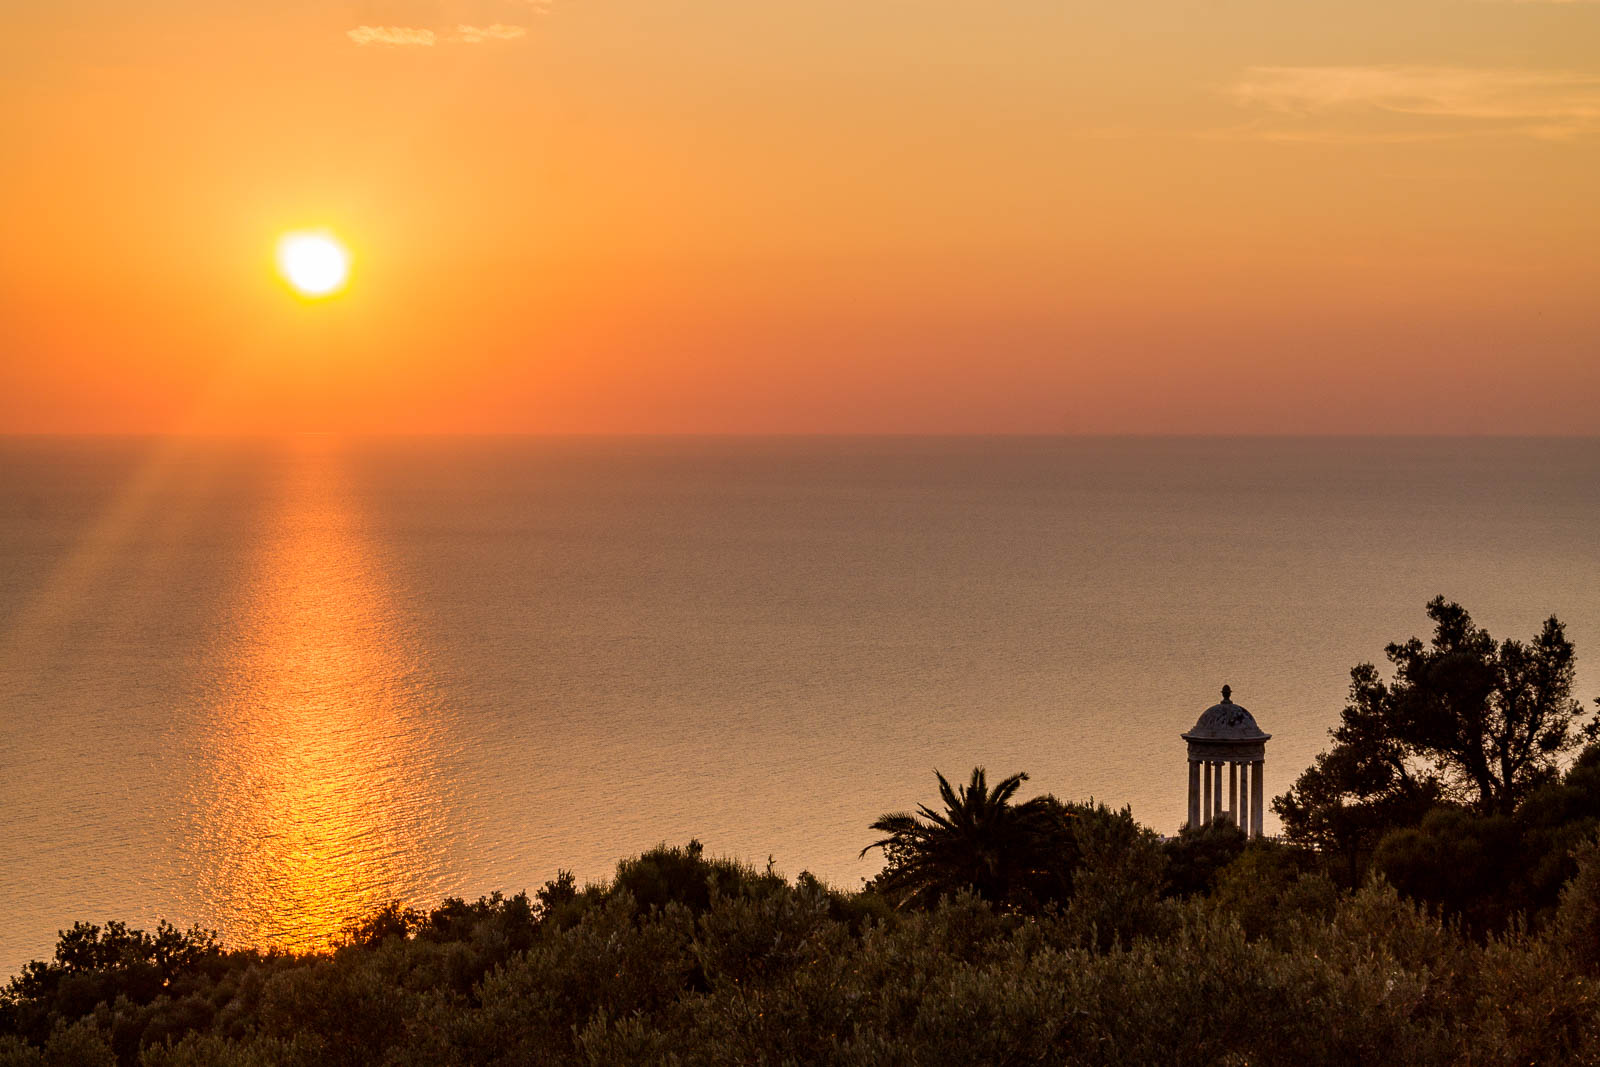 Sunset at Son Marroig in Mallorca